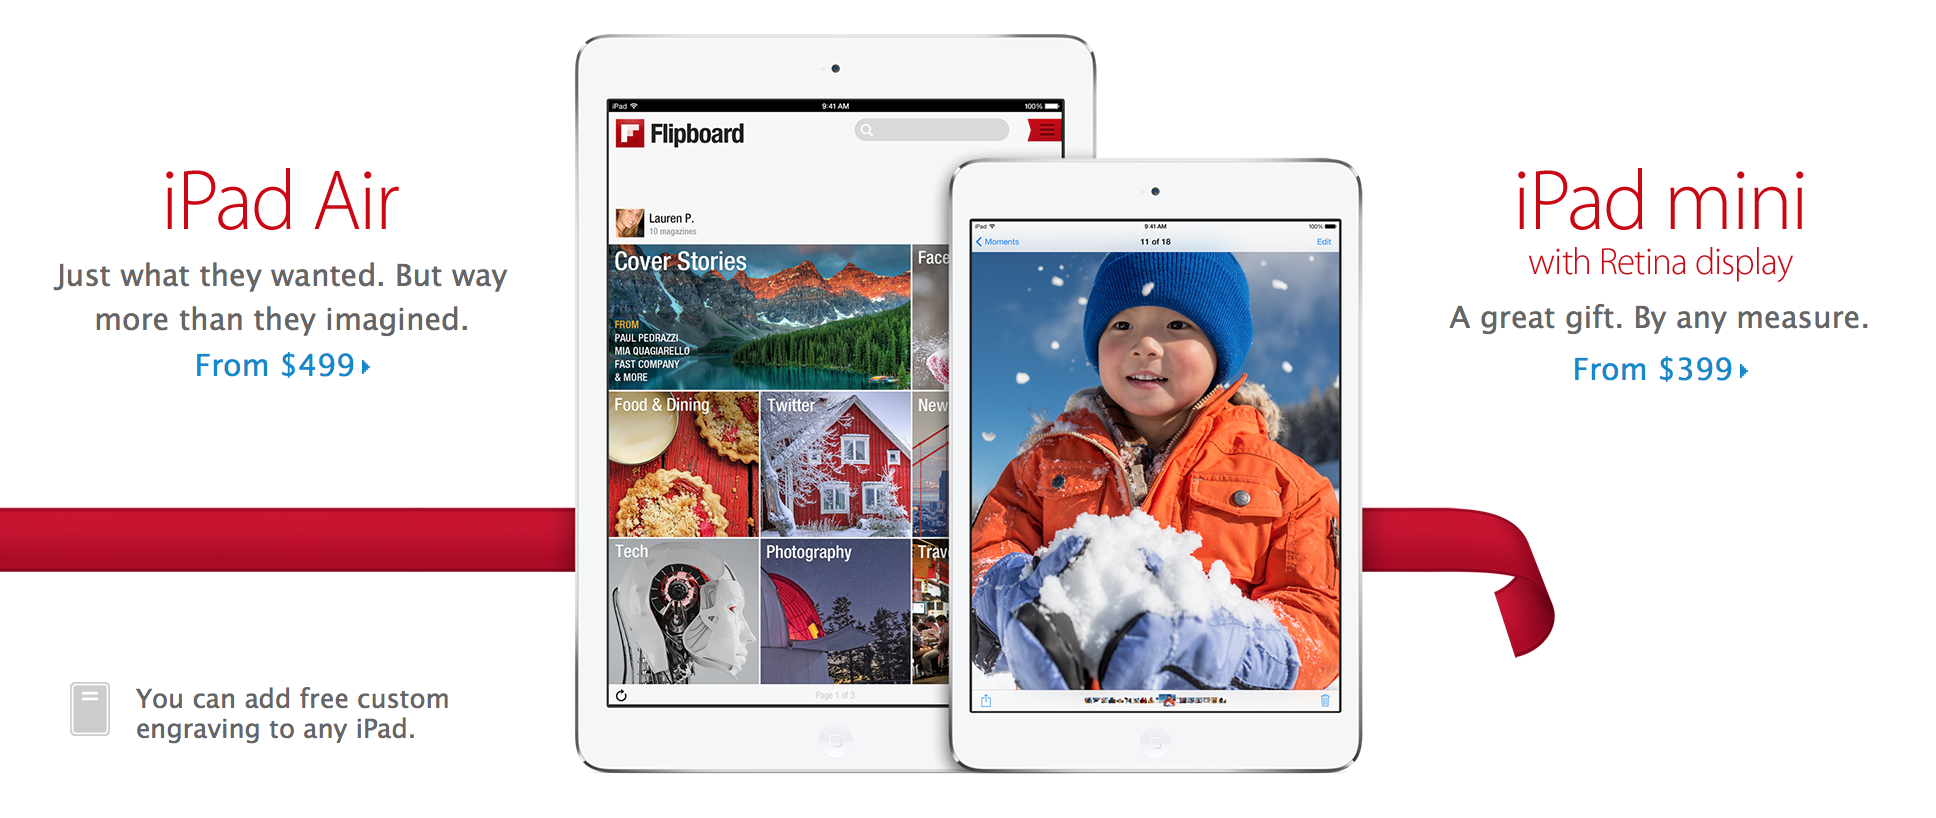 Apple Launches iPad mini With Retina Display In The Apple Online Store